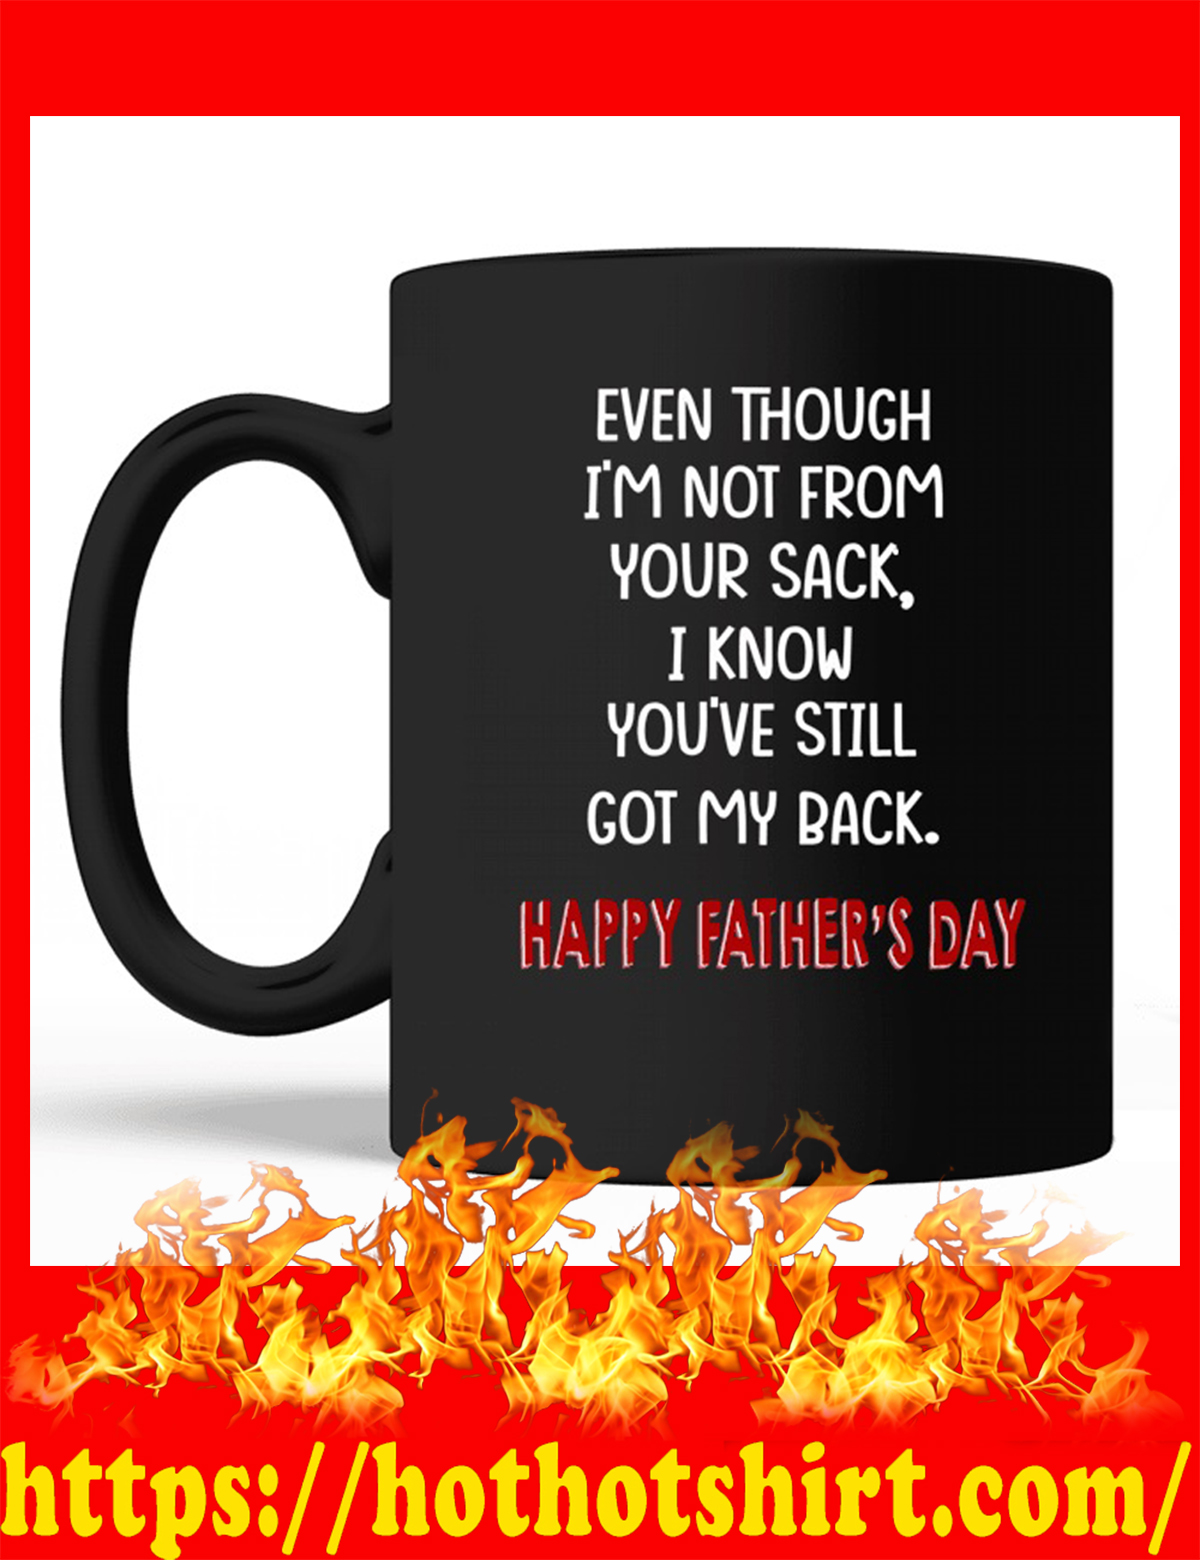 Black version Even though i'm not from your sack i know you've still got my back happy father's day mug